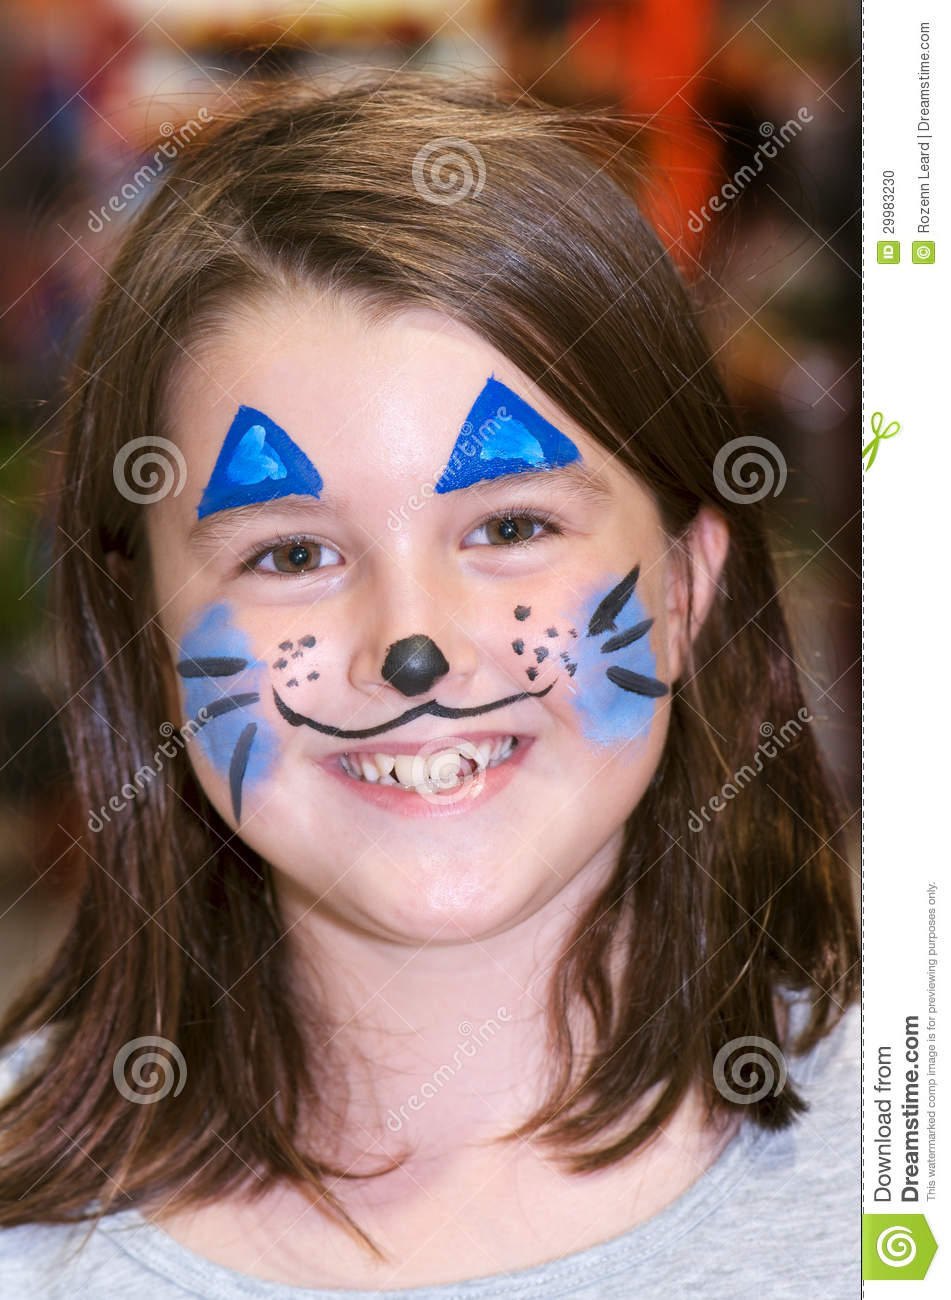 Bunny face painting stock photo image 29983230 - Resource com verven ...